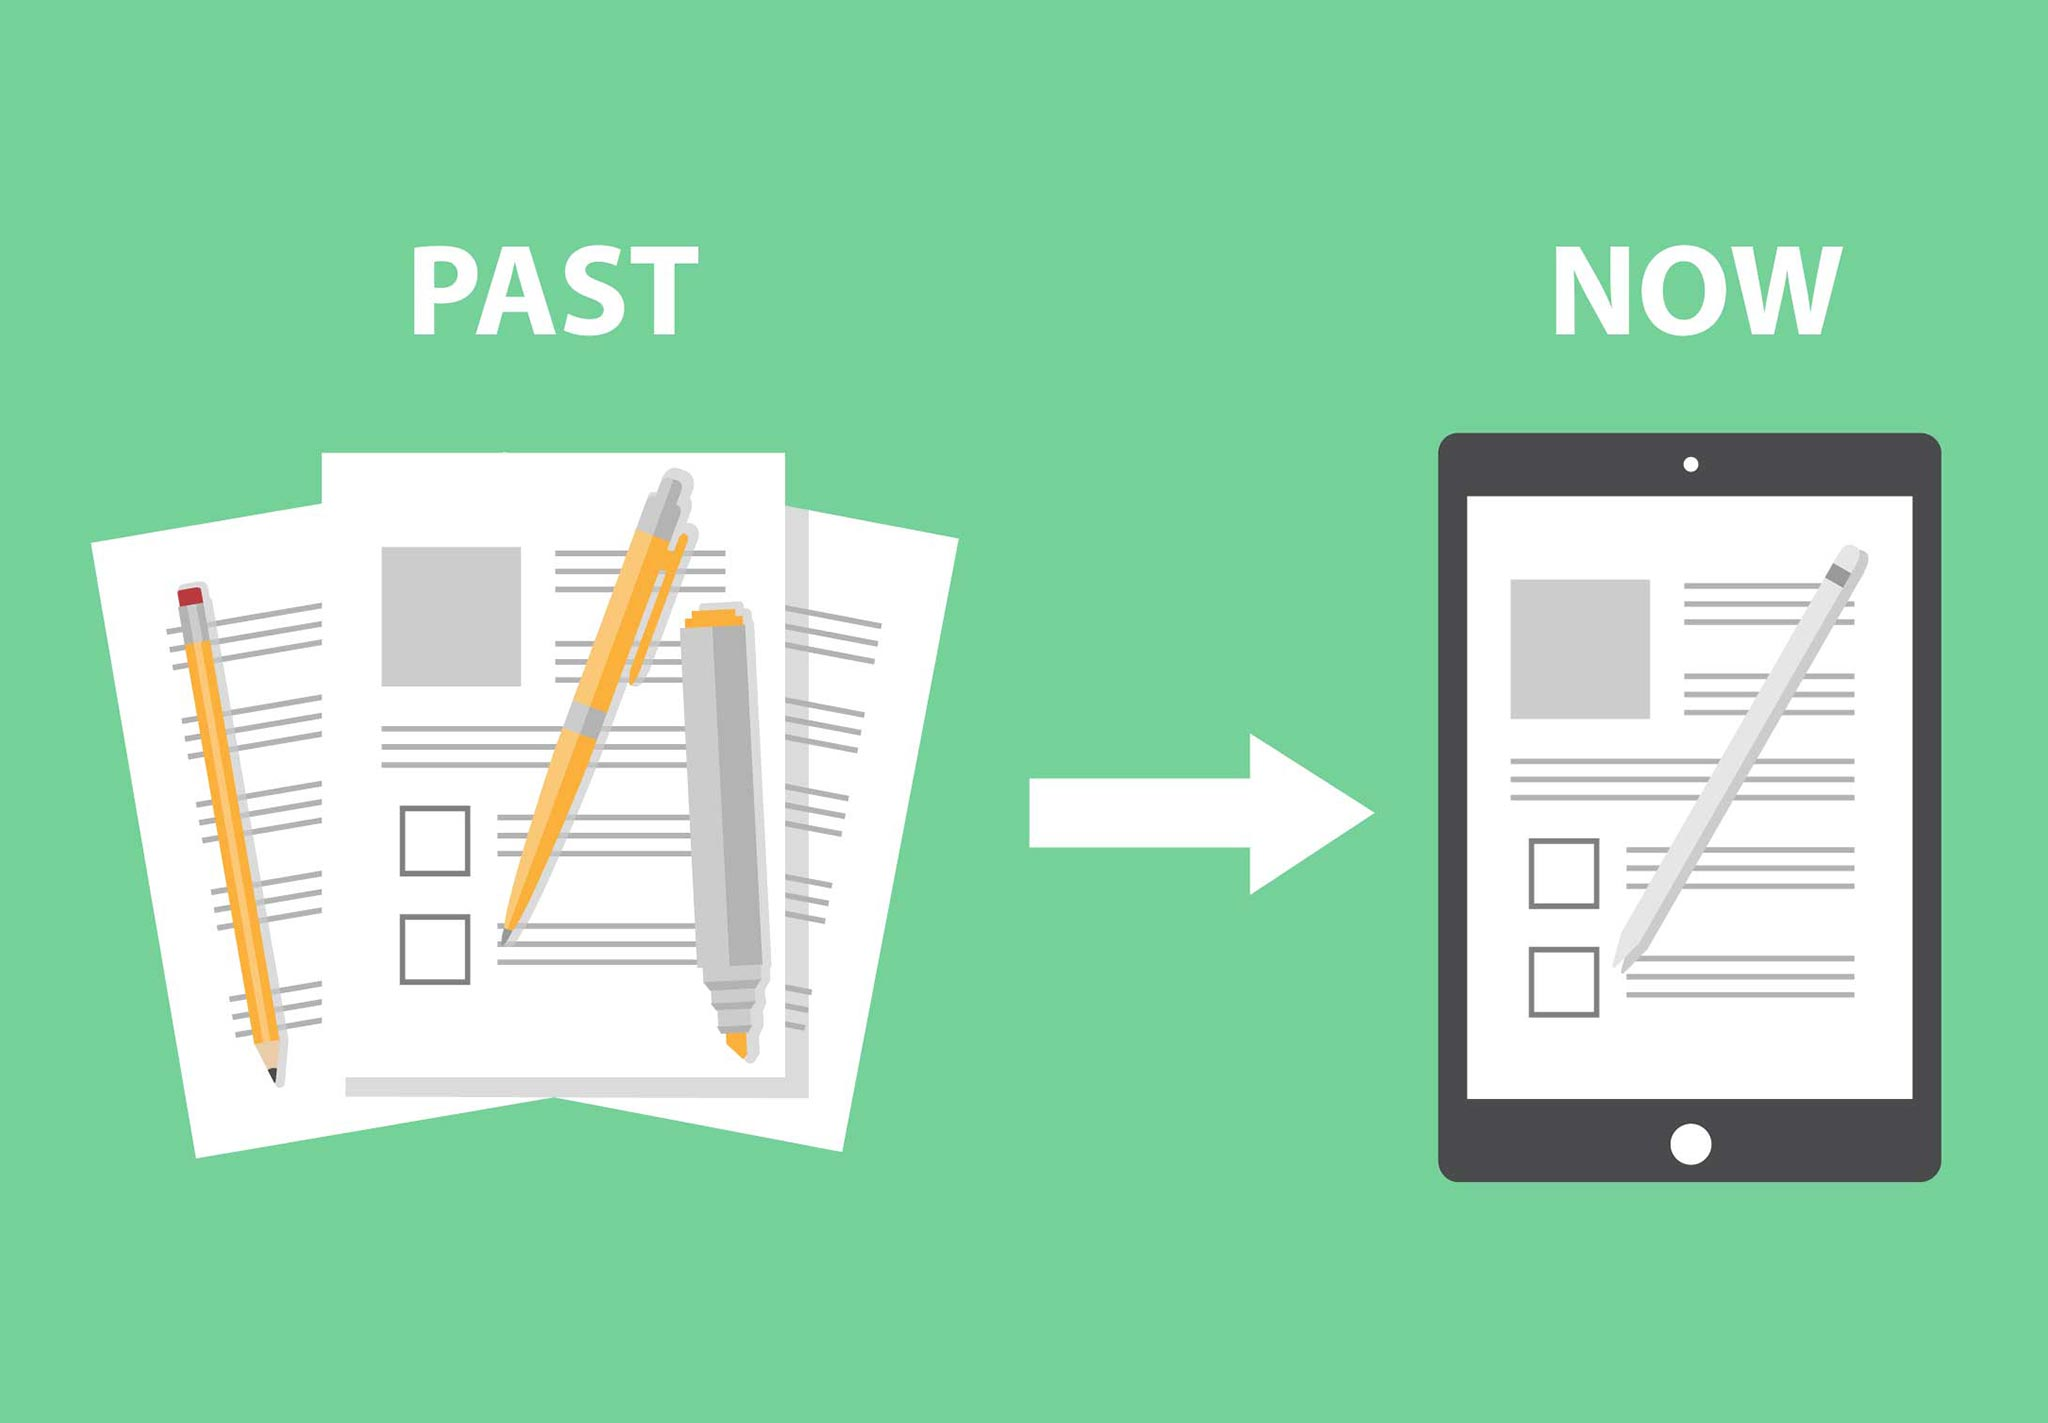 How to Transition to Paperless Operations